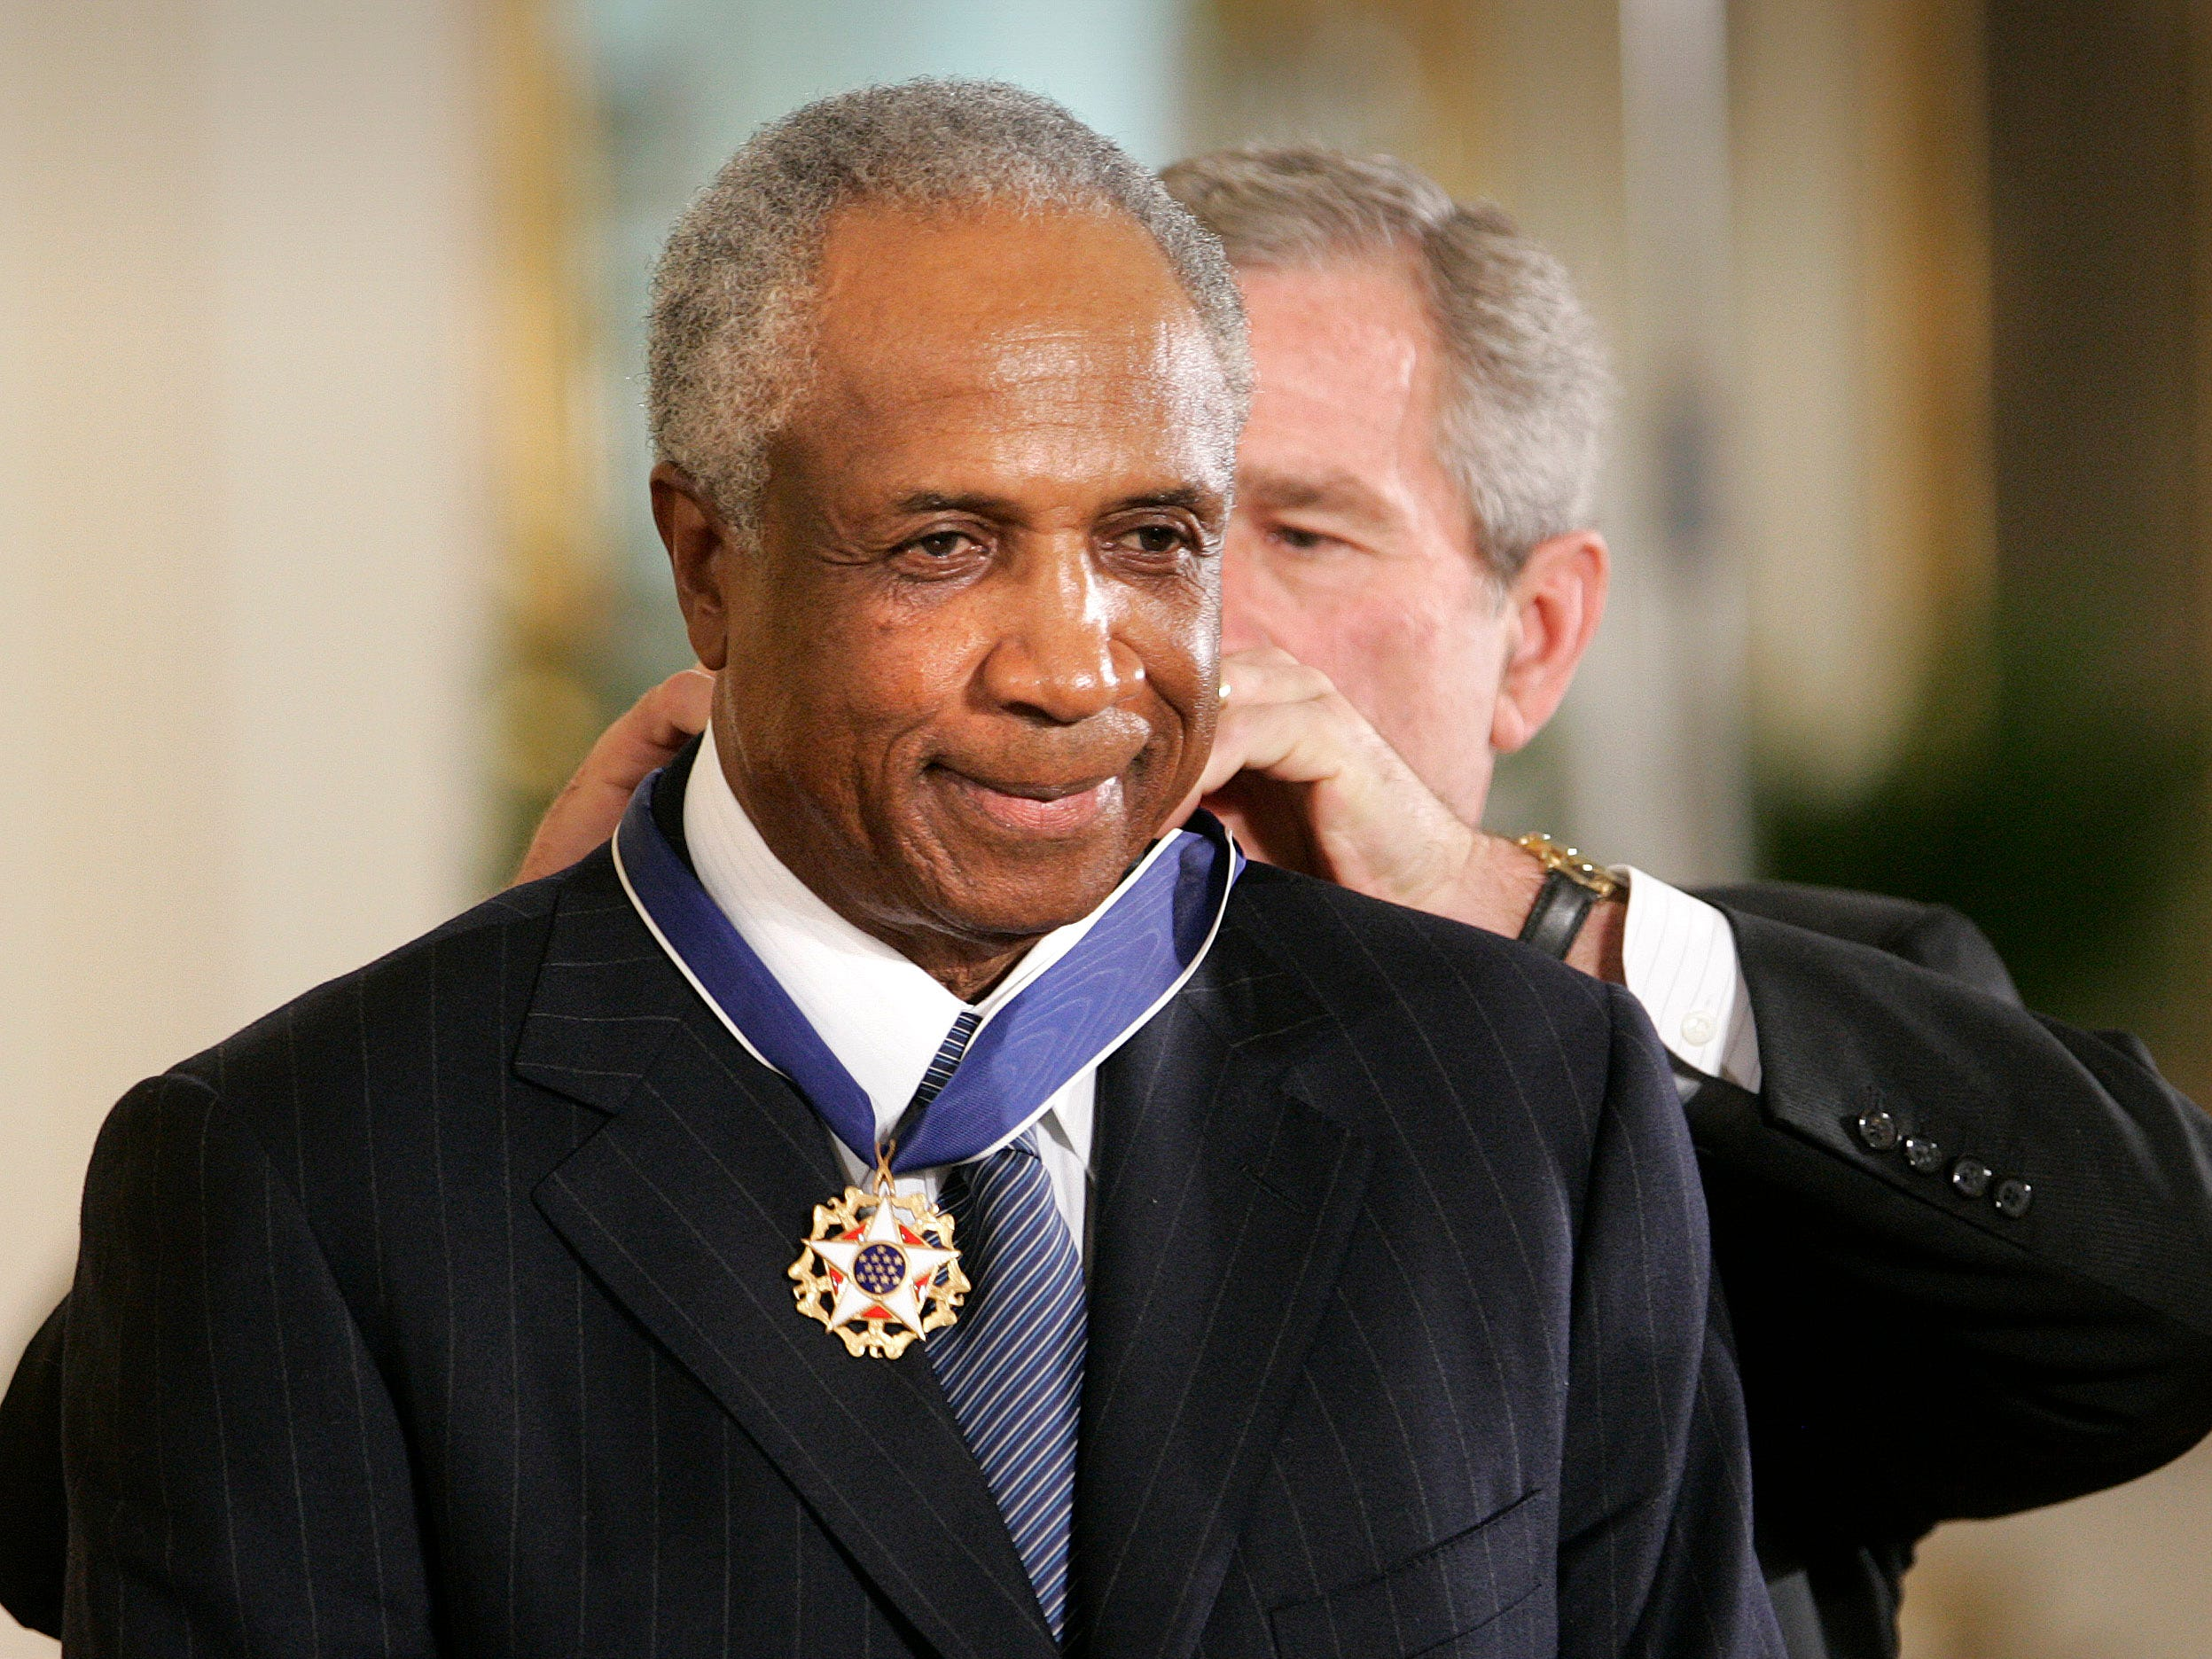 President Bush awards Frank Robinson the Presidential Medal of Freedom Award in the East Room of the White House in 2005, in Washington. The Presidential Medal of Freedom is the highest civilian award given.(AP Photo/Lawrence Jackson) ORG XMIT: DCLJ103